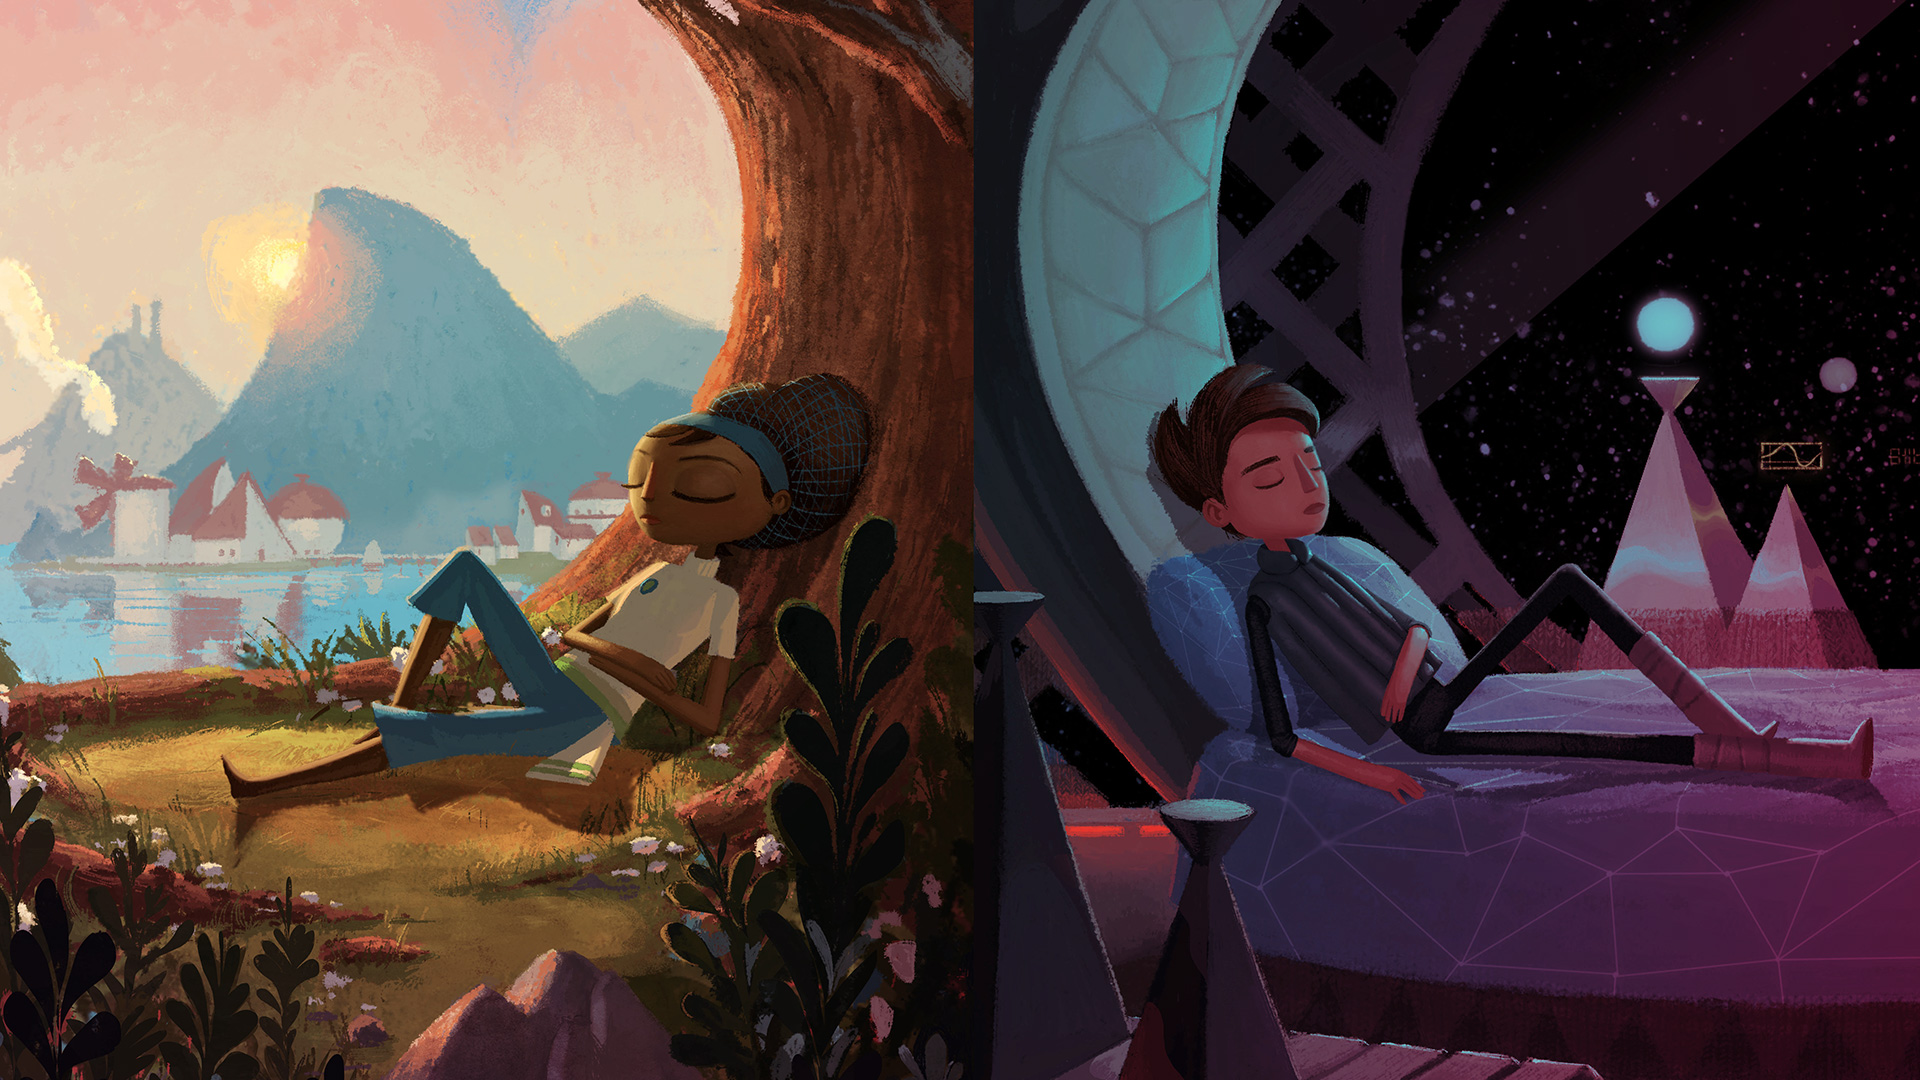 Broken Age's first act available on Ouya, Act 2 available to pre-order